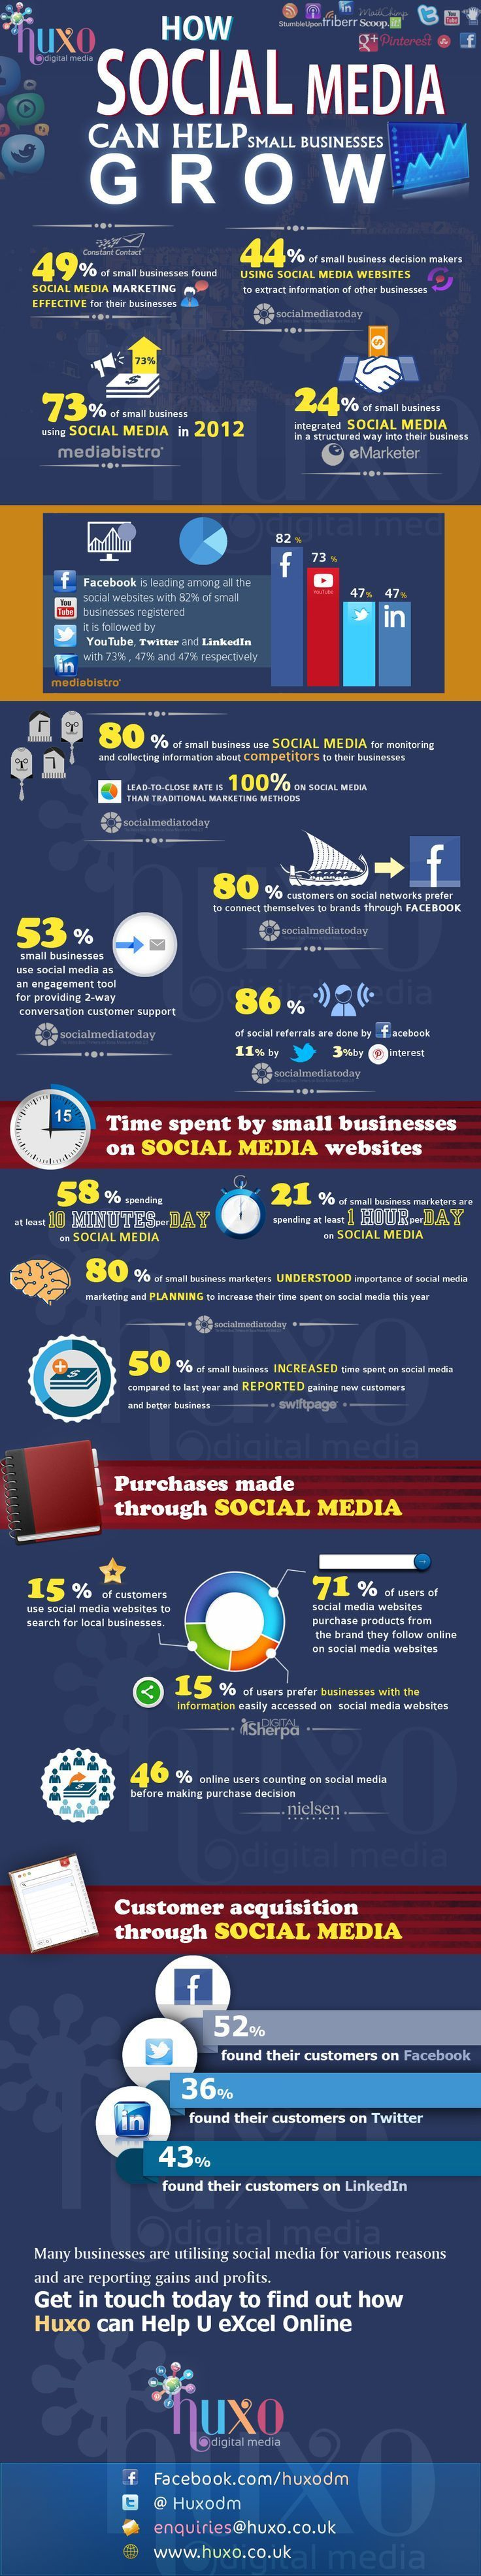 Infographic Infografia Infografica - 30+ Social Media Statistics - Growth of SMBs - social media marketing can help small businesses grow